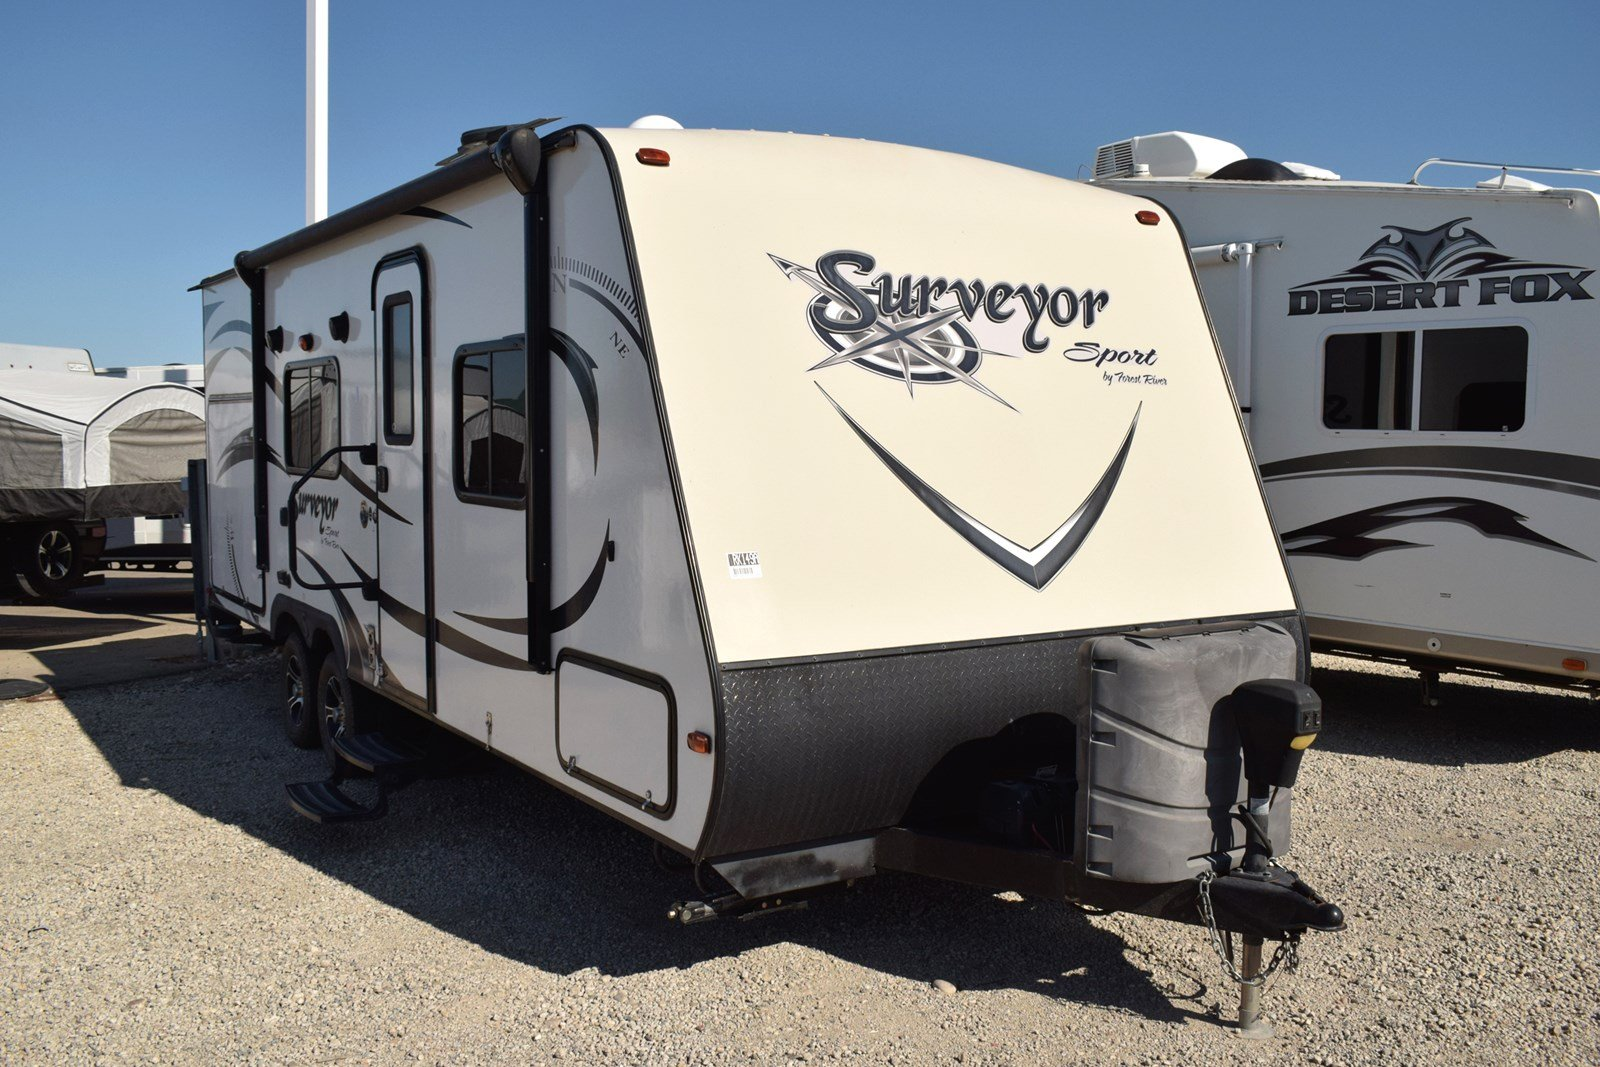 Pre-Owned 2015 FOREST RIVER SURVEYOR 240RBS